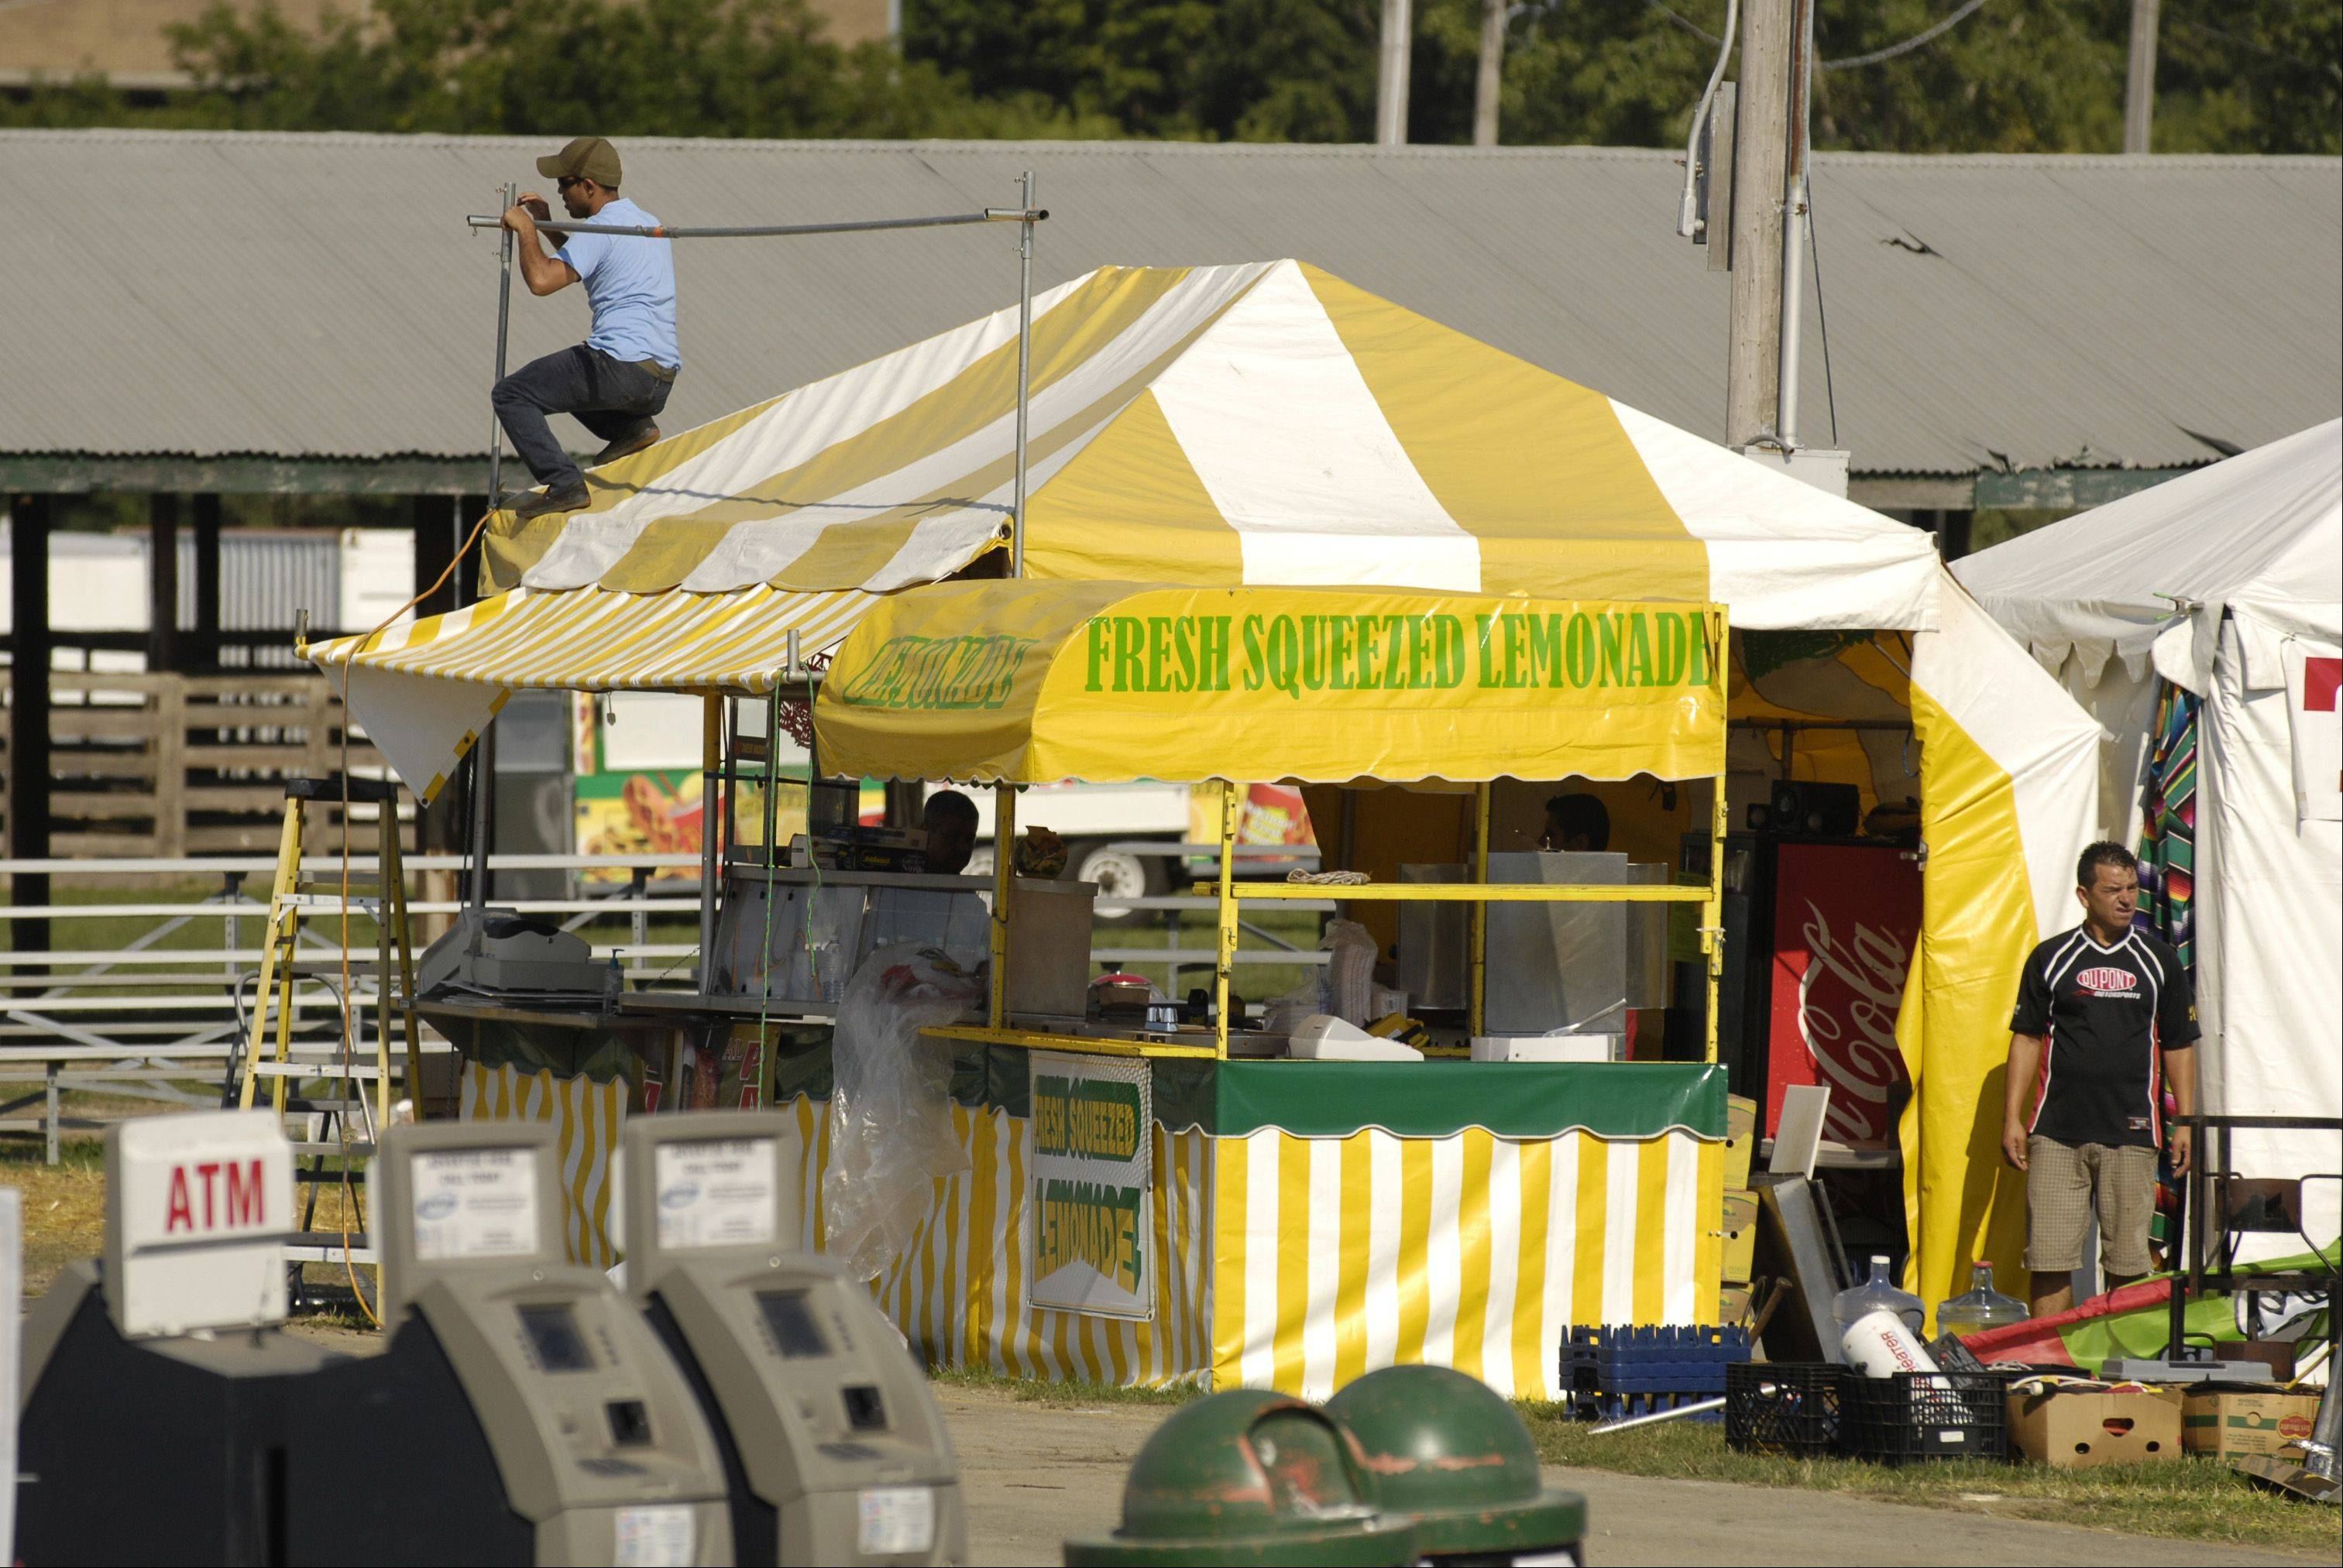 Crews take down tents and clean up trash Monday after the closing of the 2012 DuPage County Fair. Officials reported a significant increase in attendance this year.